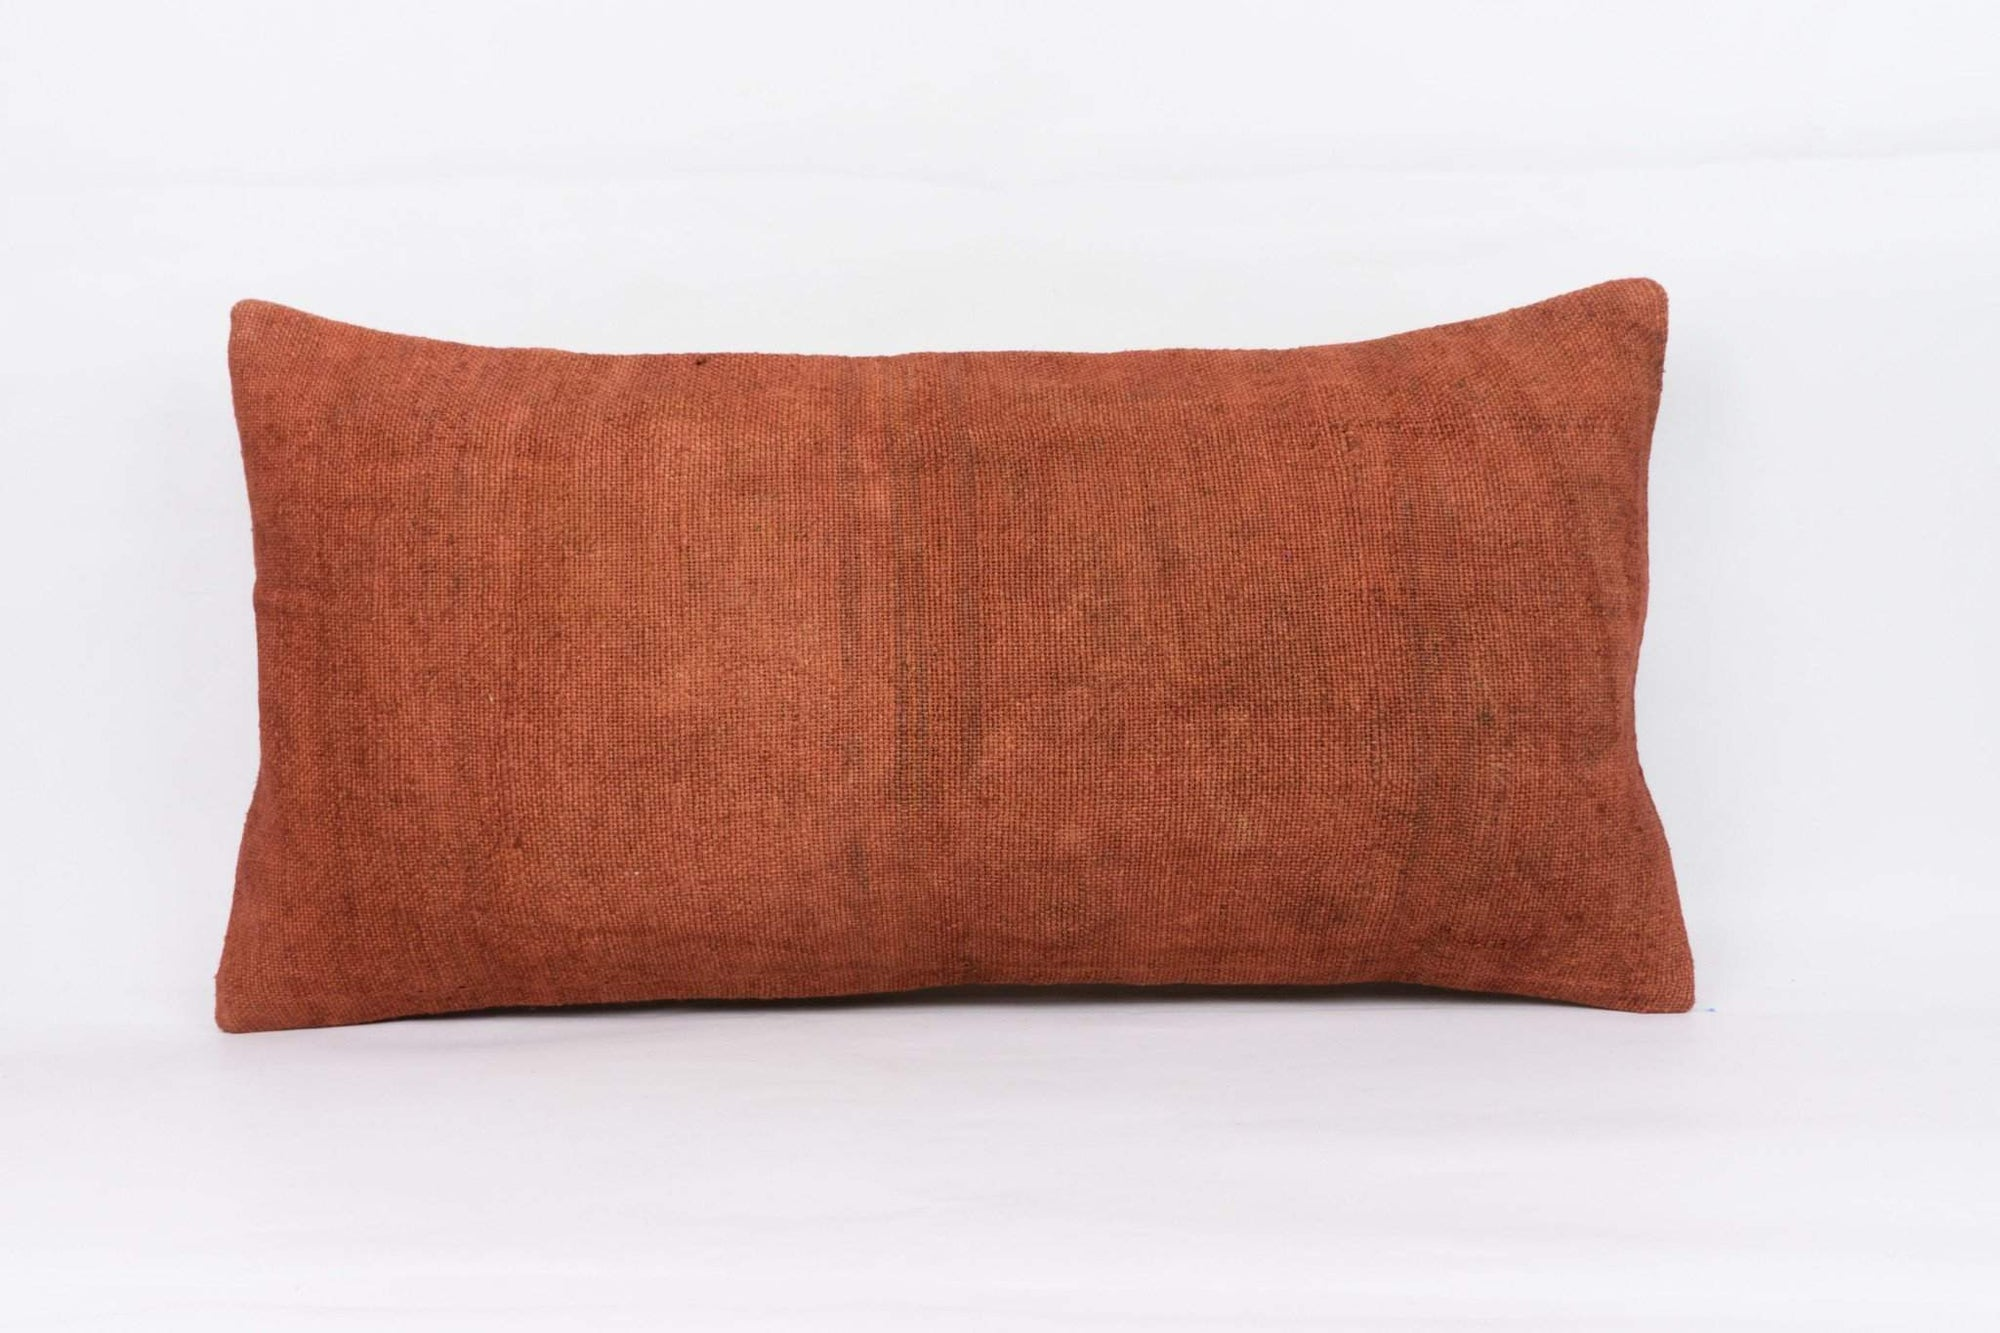 Plain Brown Kilim Pillow Cover 12x24 4172